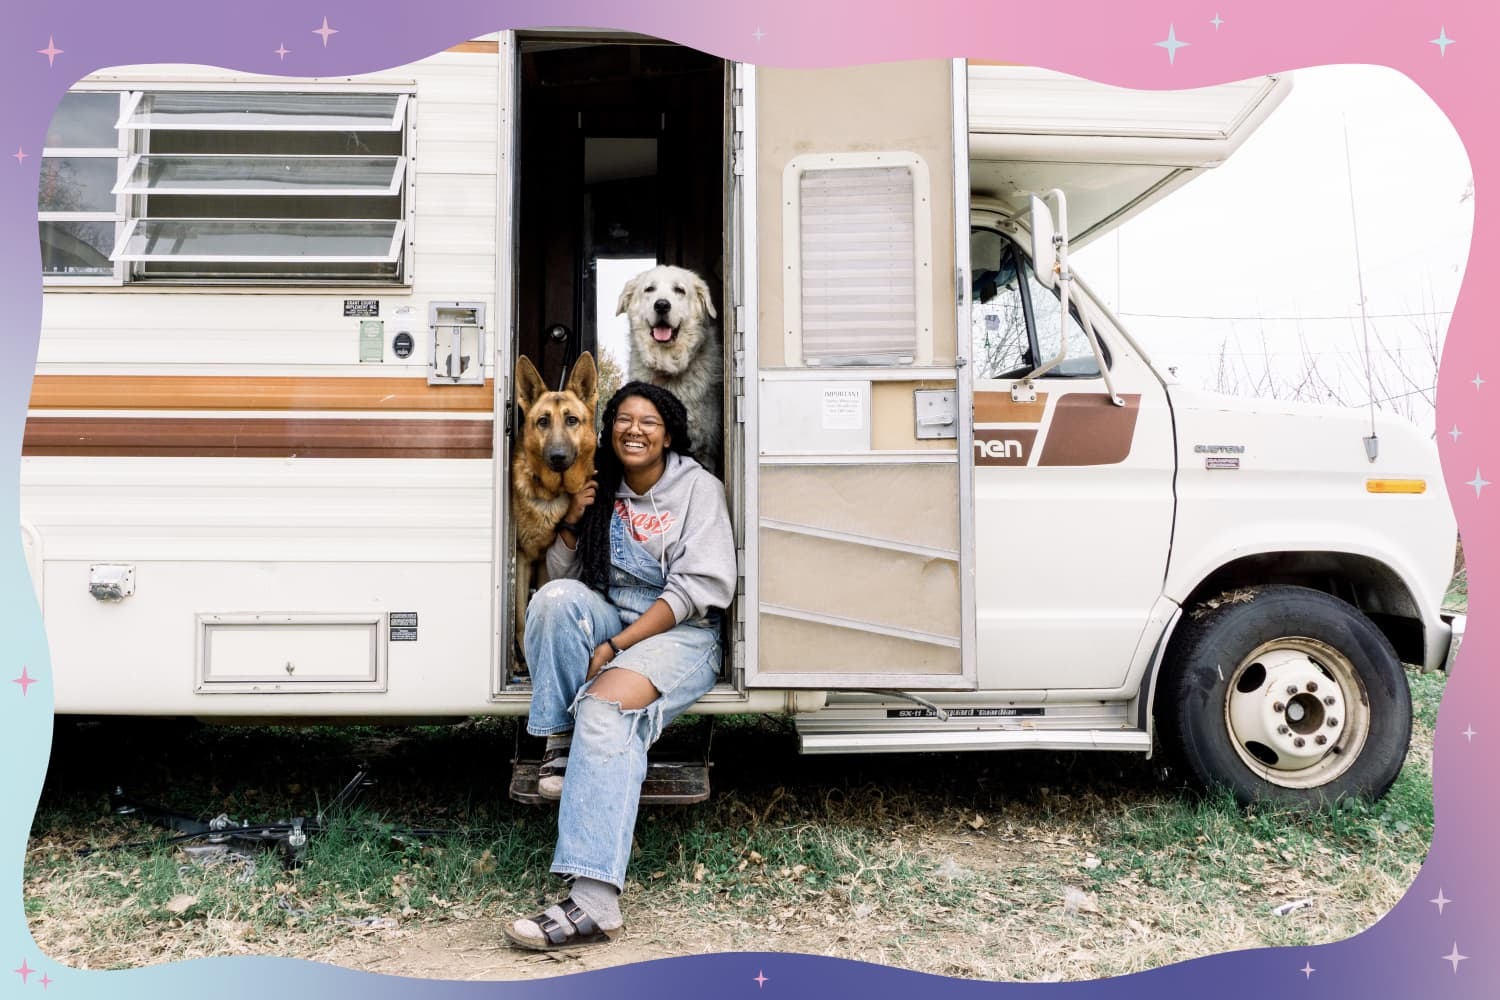 This 180-Square-Foot Renovated 1970s RV Is the Coziest Home on Wheels